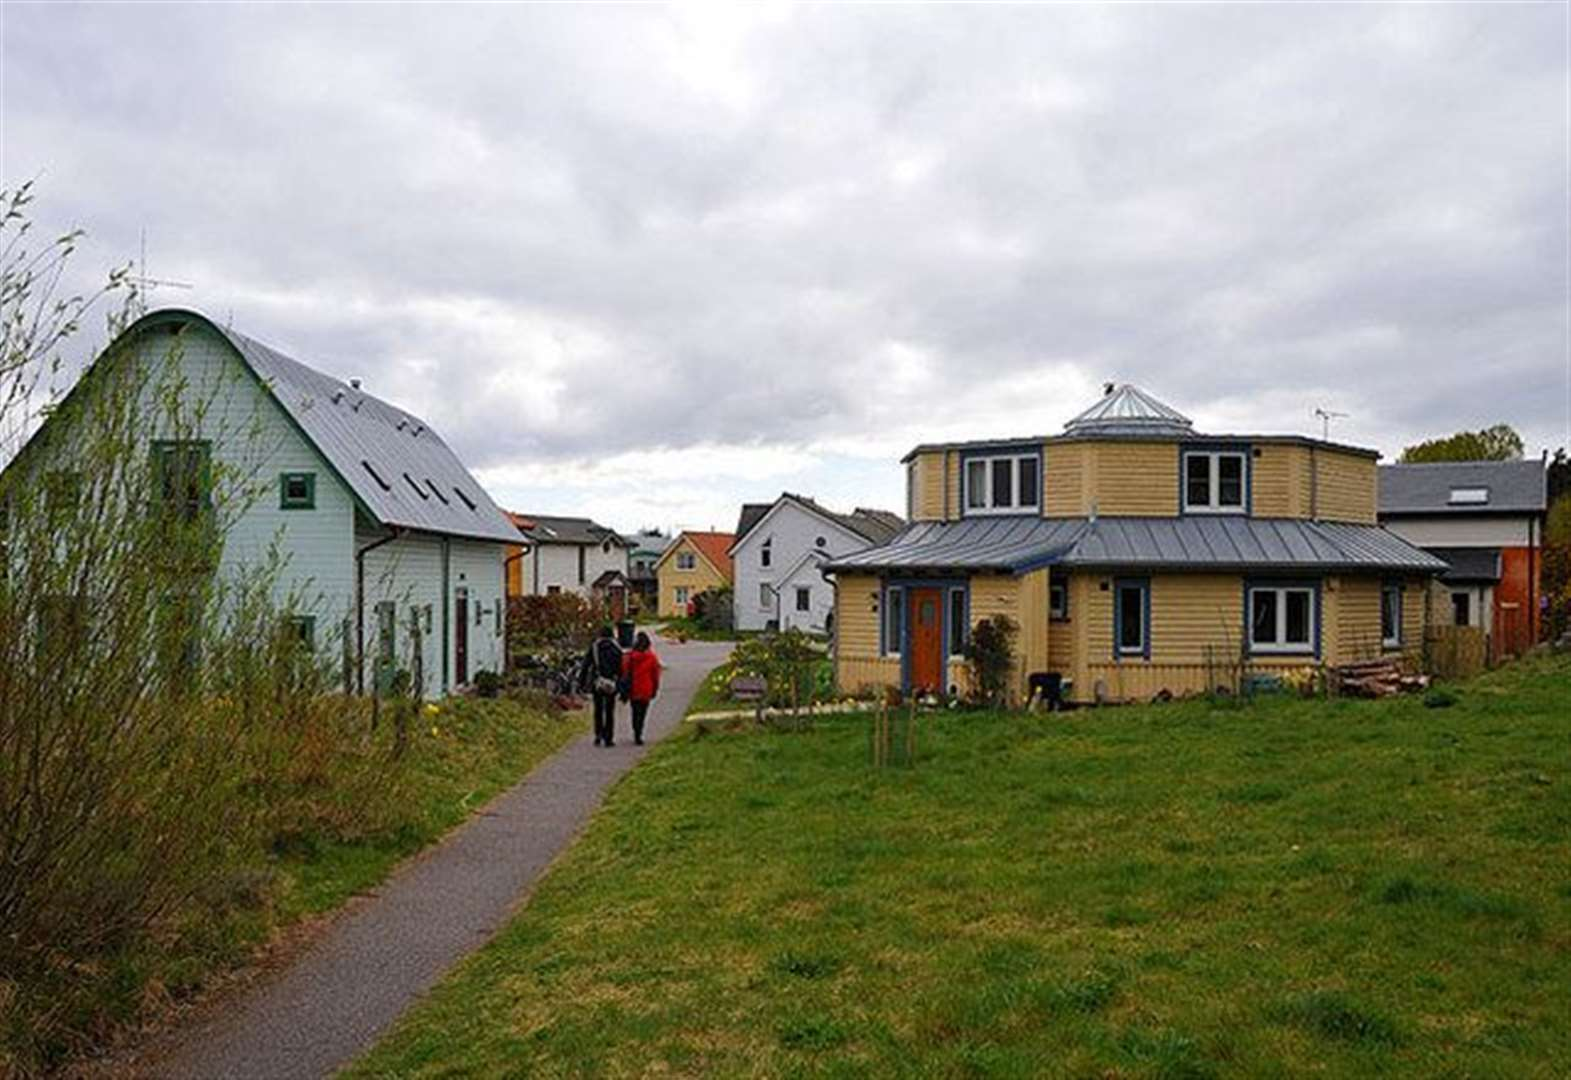 Findhorn eco village gets go-ahead to expand